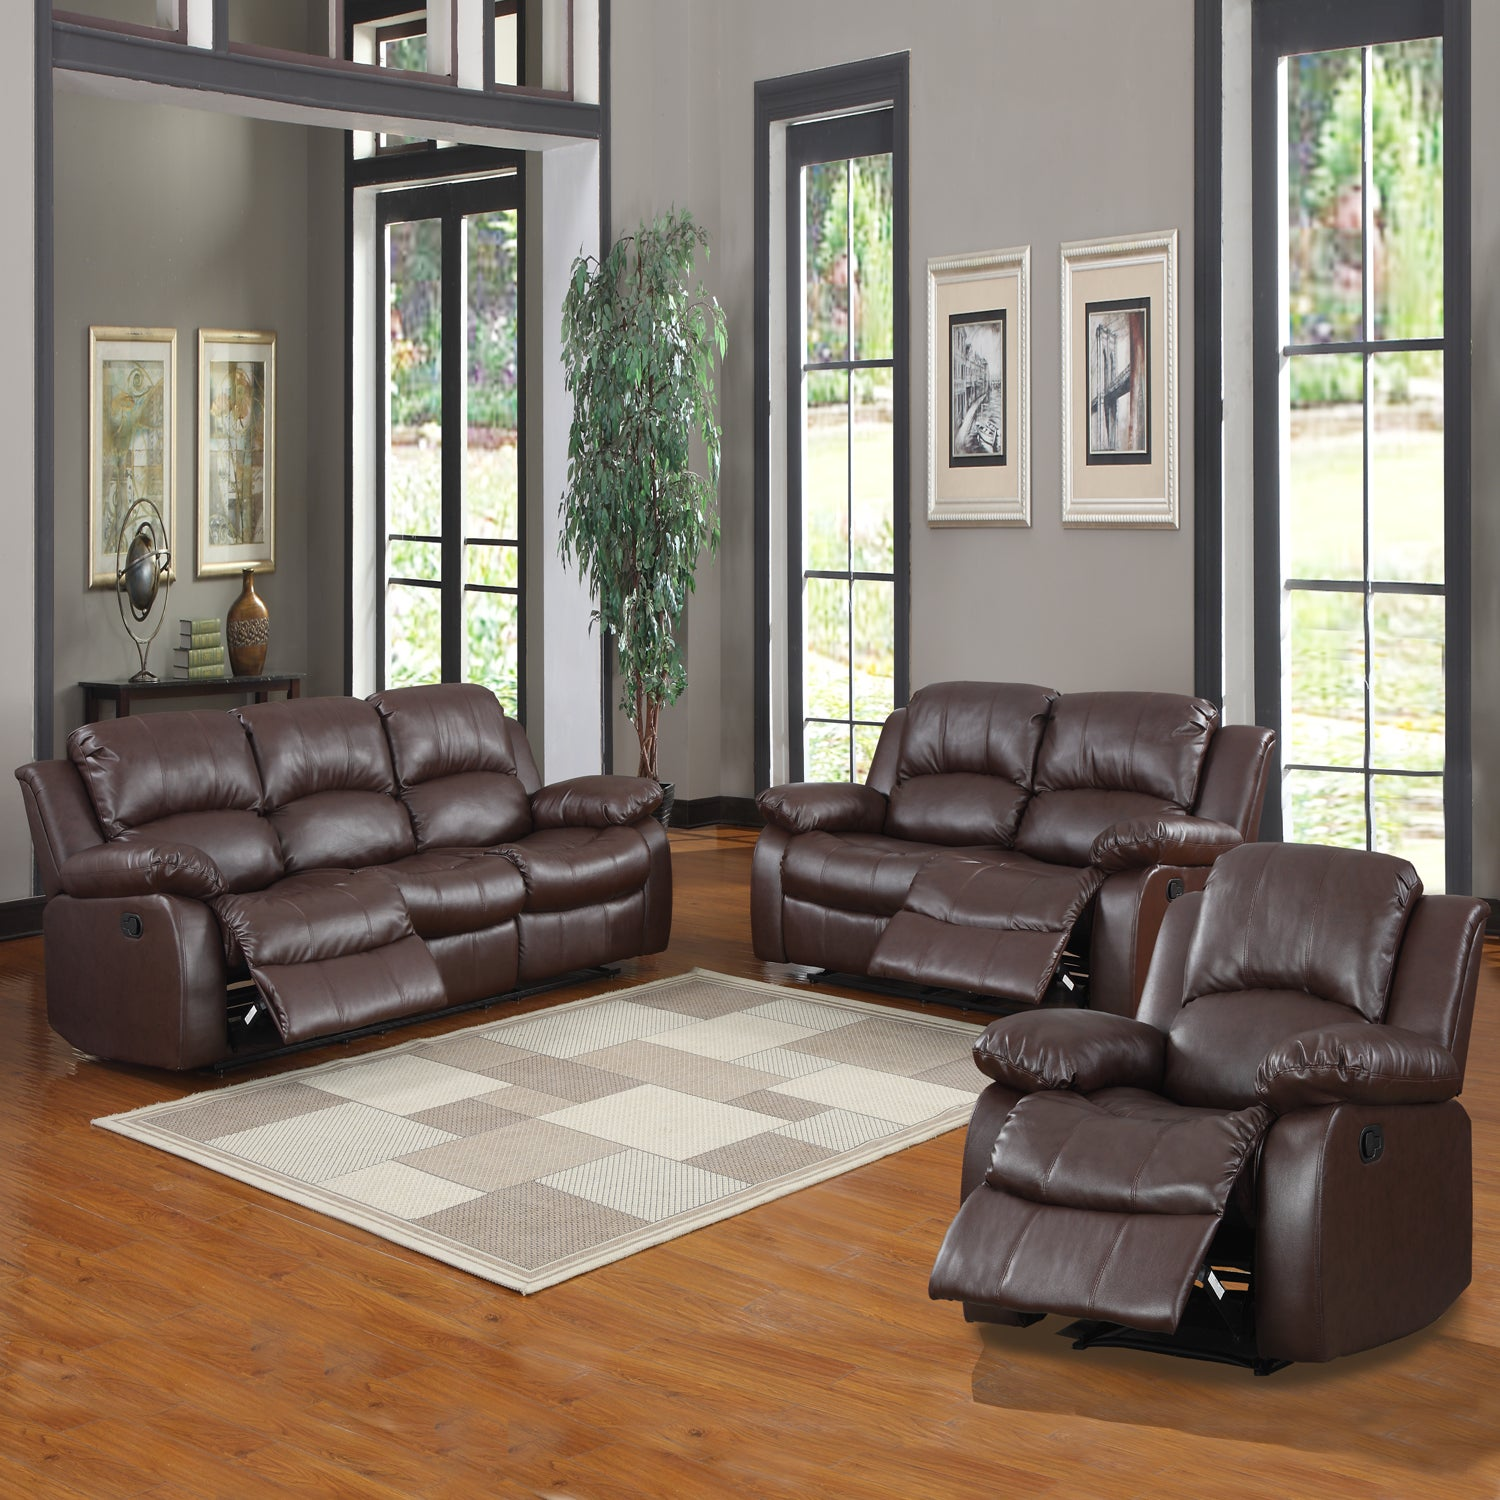 Tribecca Home Coleford 3 Piece Tufted Transitional Reclining Living Room Set Overstock